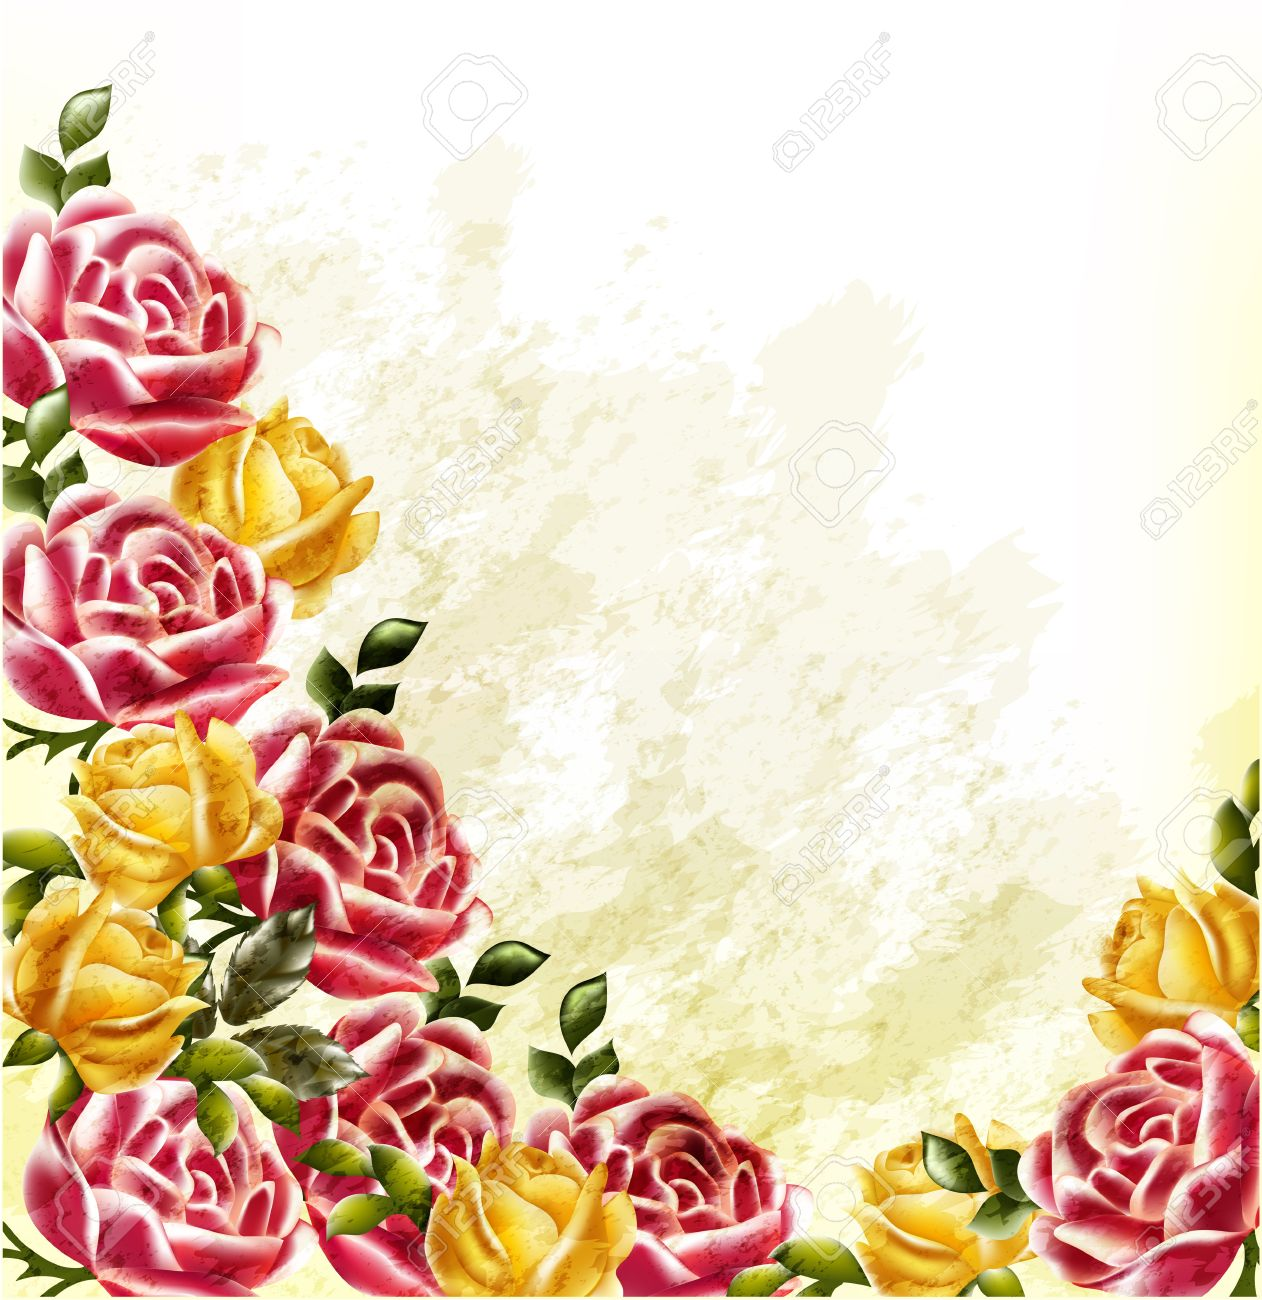 Elegant background with roses painted in watercolor retro style Stock Vector - 17048756